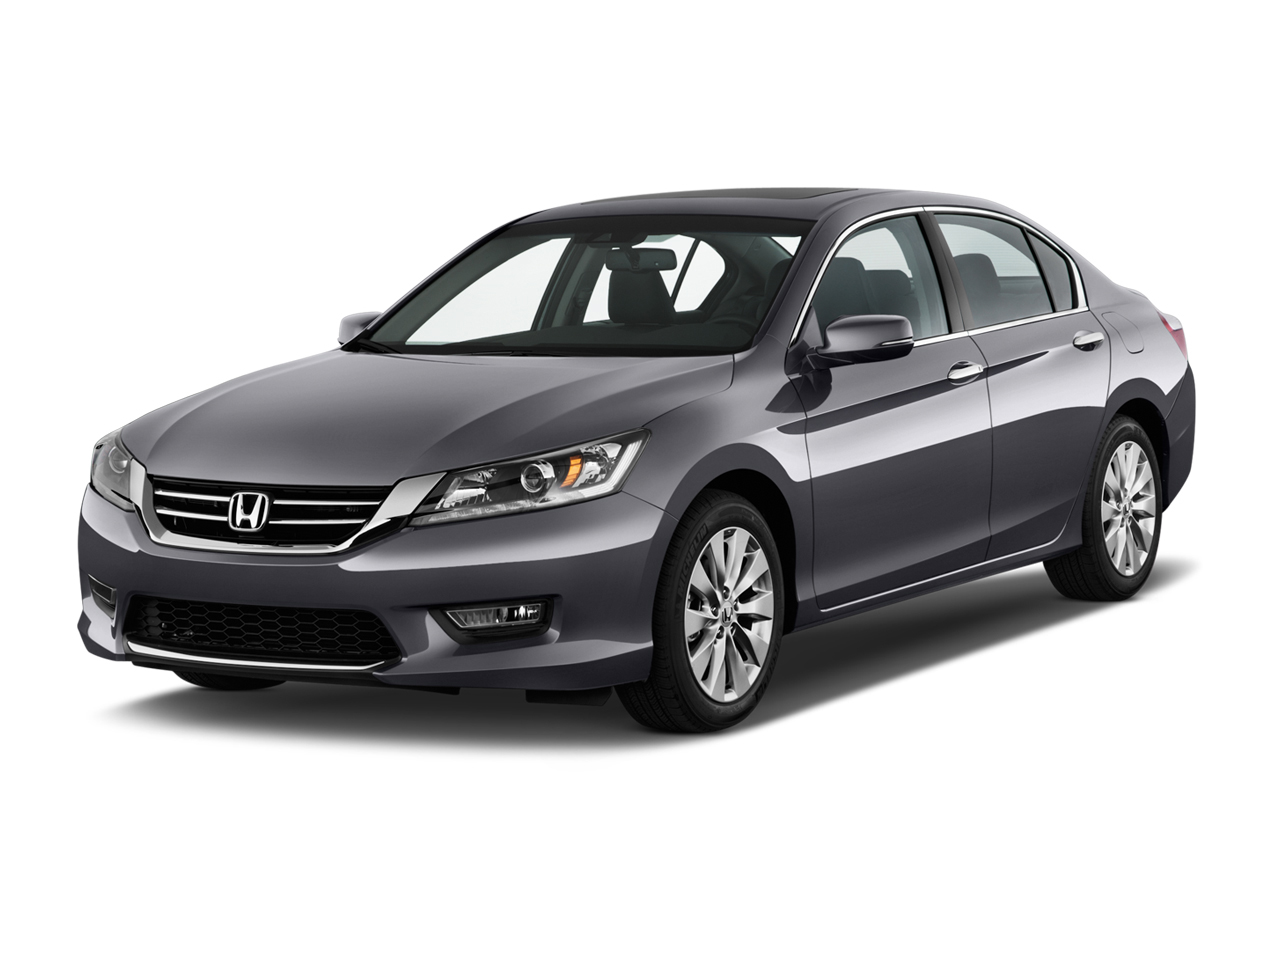 2013 honda accord sedan review ratings specs prices and photos the car connection. Black Bedroom Furniture Sets. Home Design Ideas